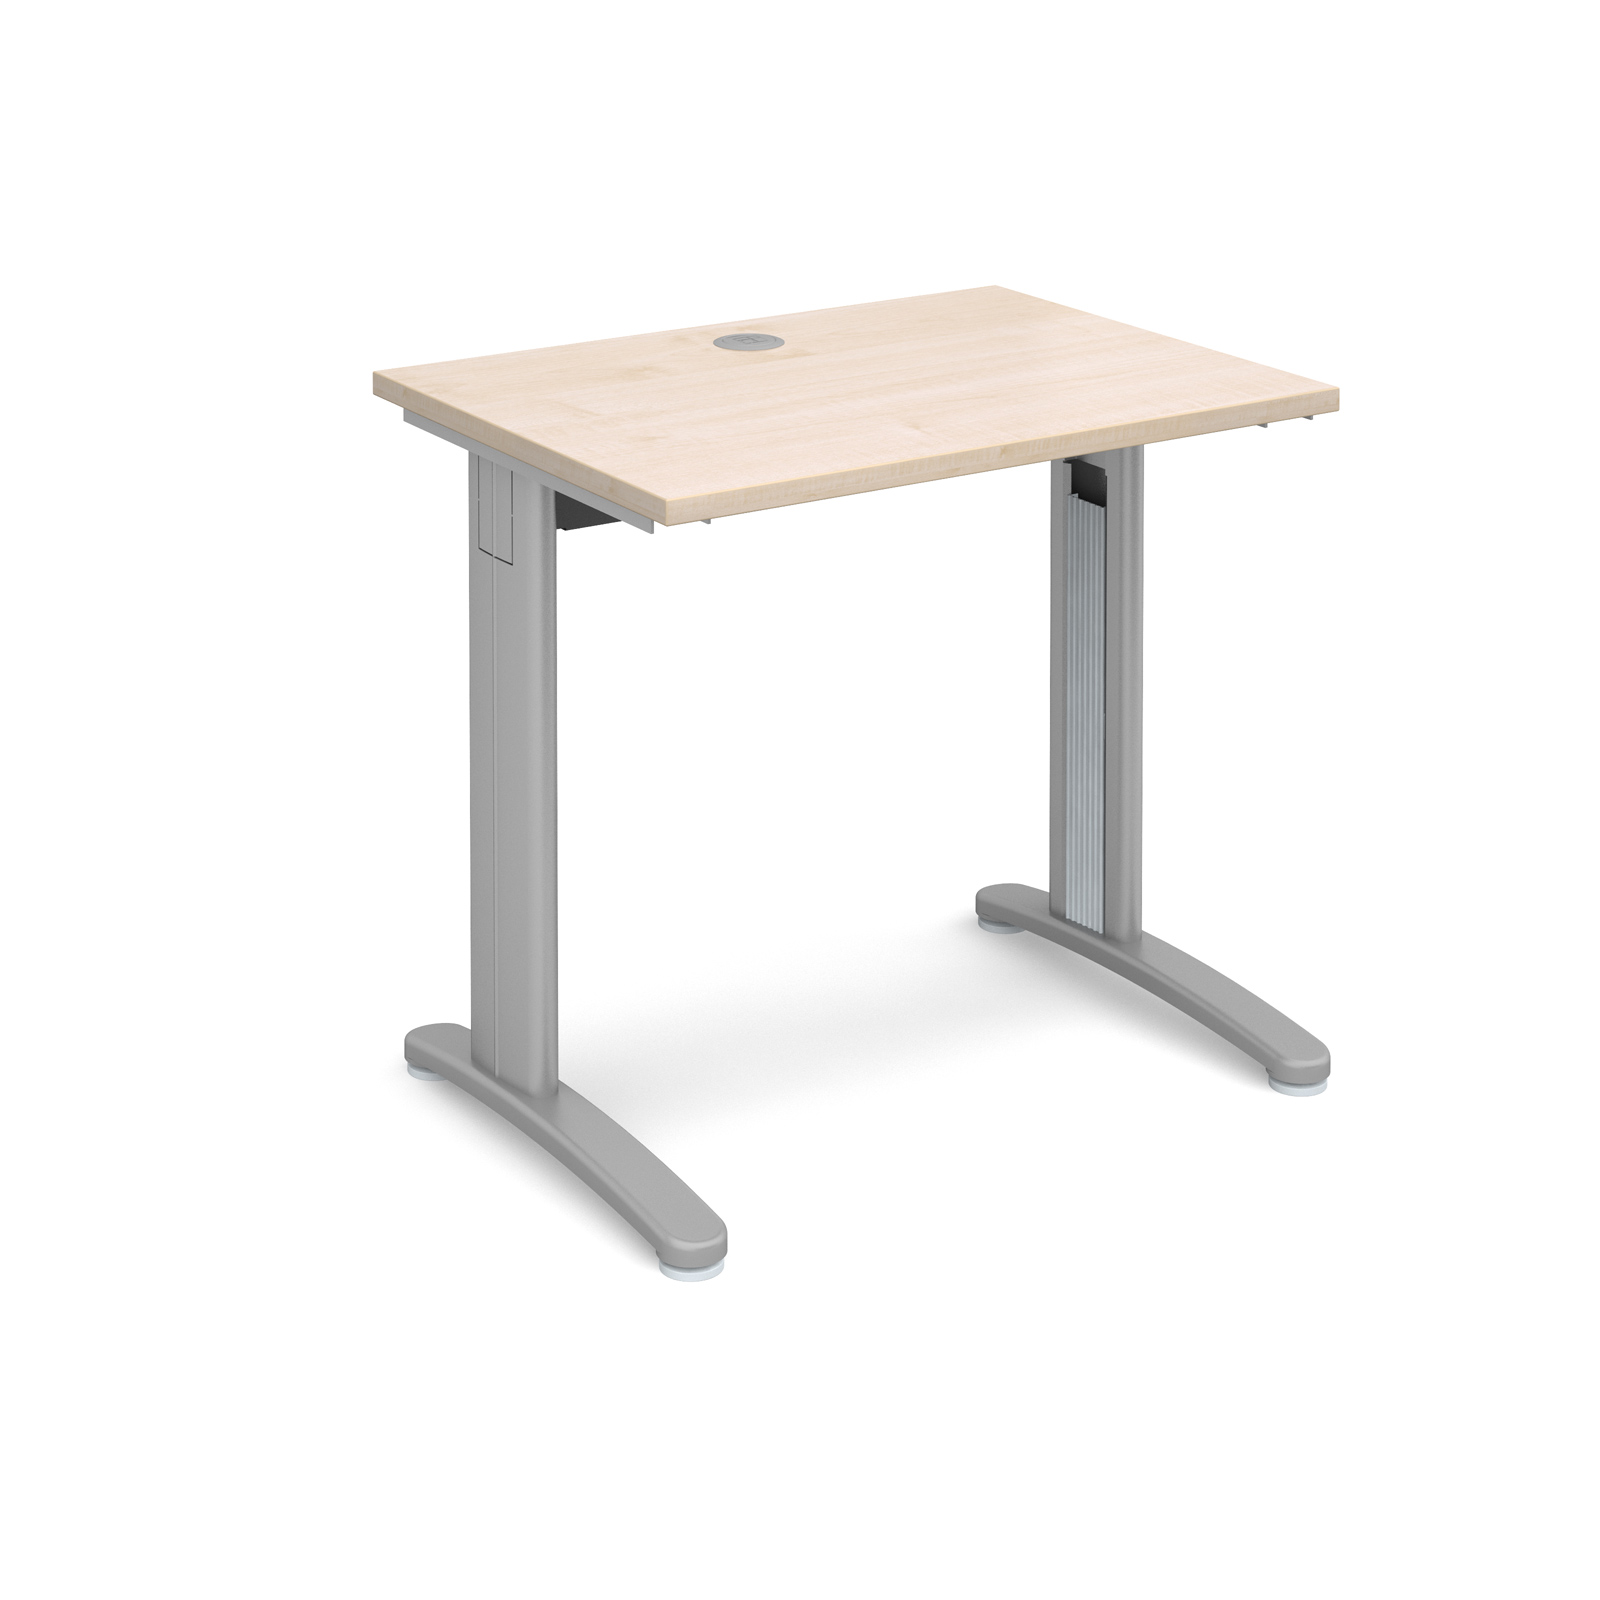 TR10 straight desk 800mm x 600mm - silver frame, maple top